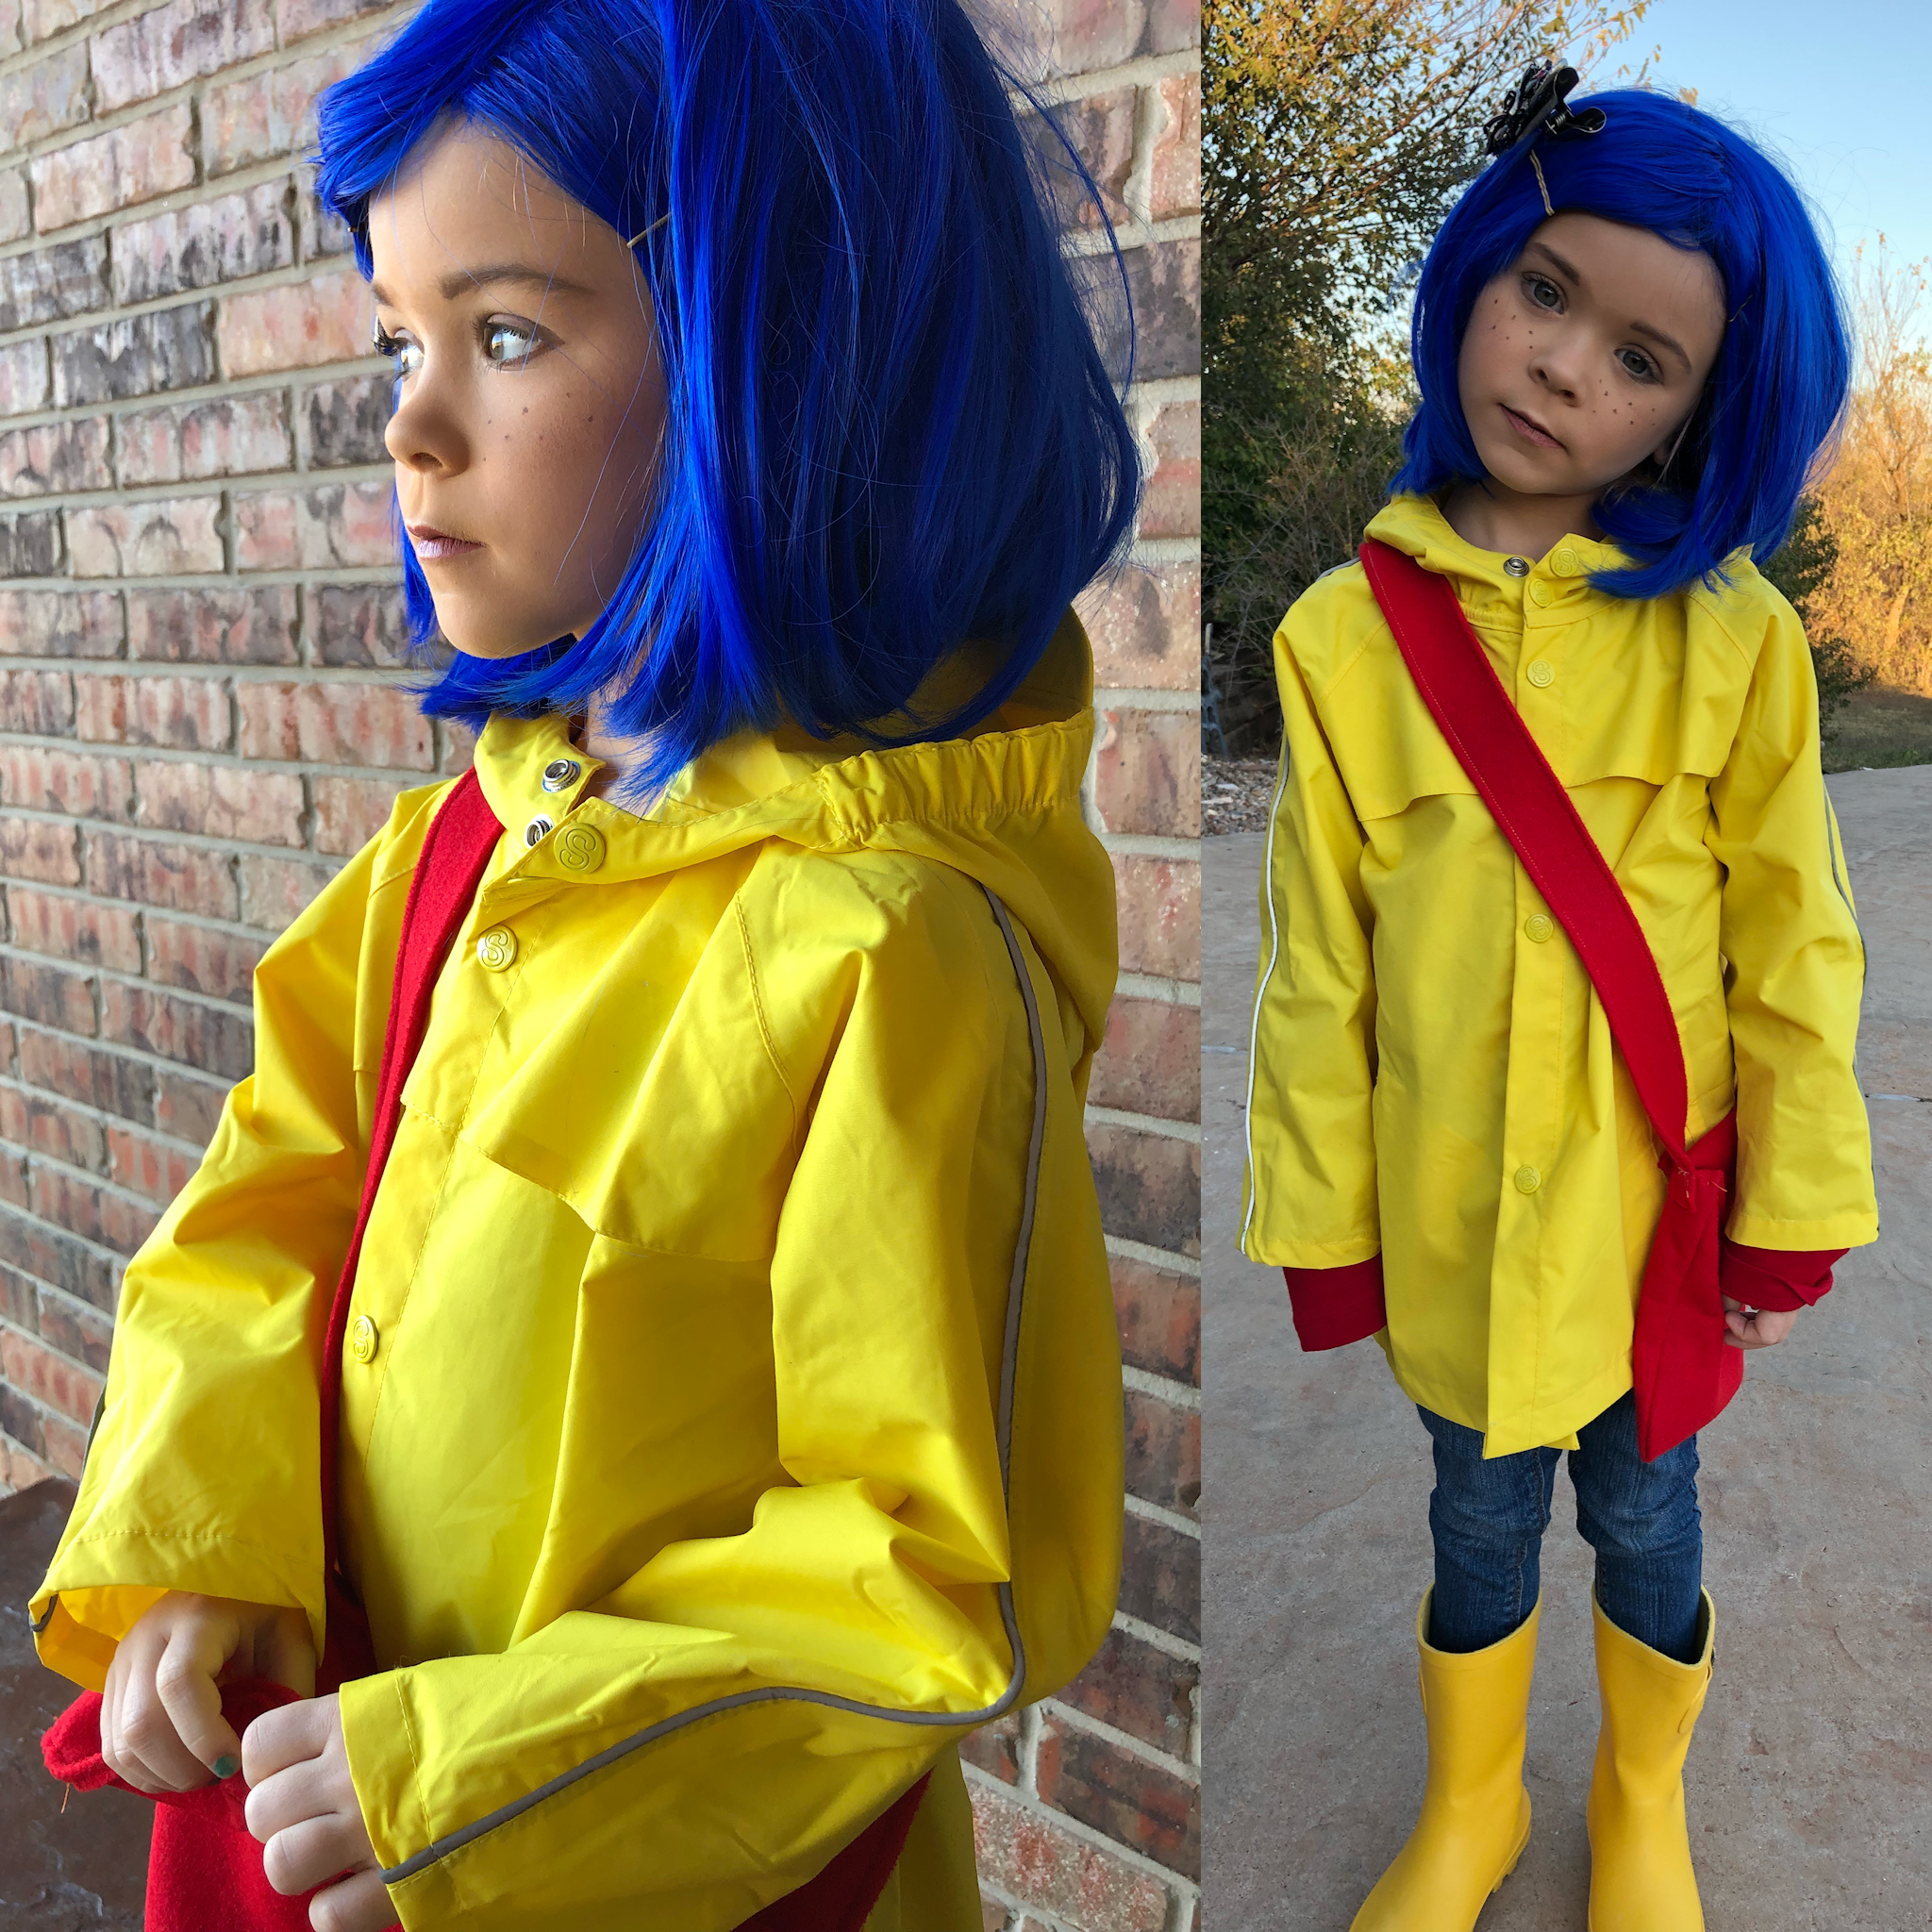 Coraline Halloween Costume Kid Halloween Costume Coraline Makeup Halloween Costumes For Kids Coraline Halloween Costume Halloween Kids